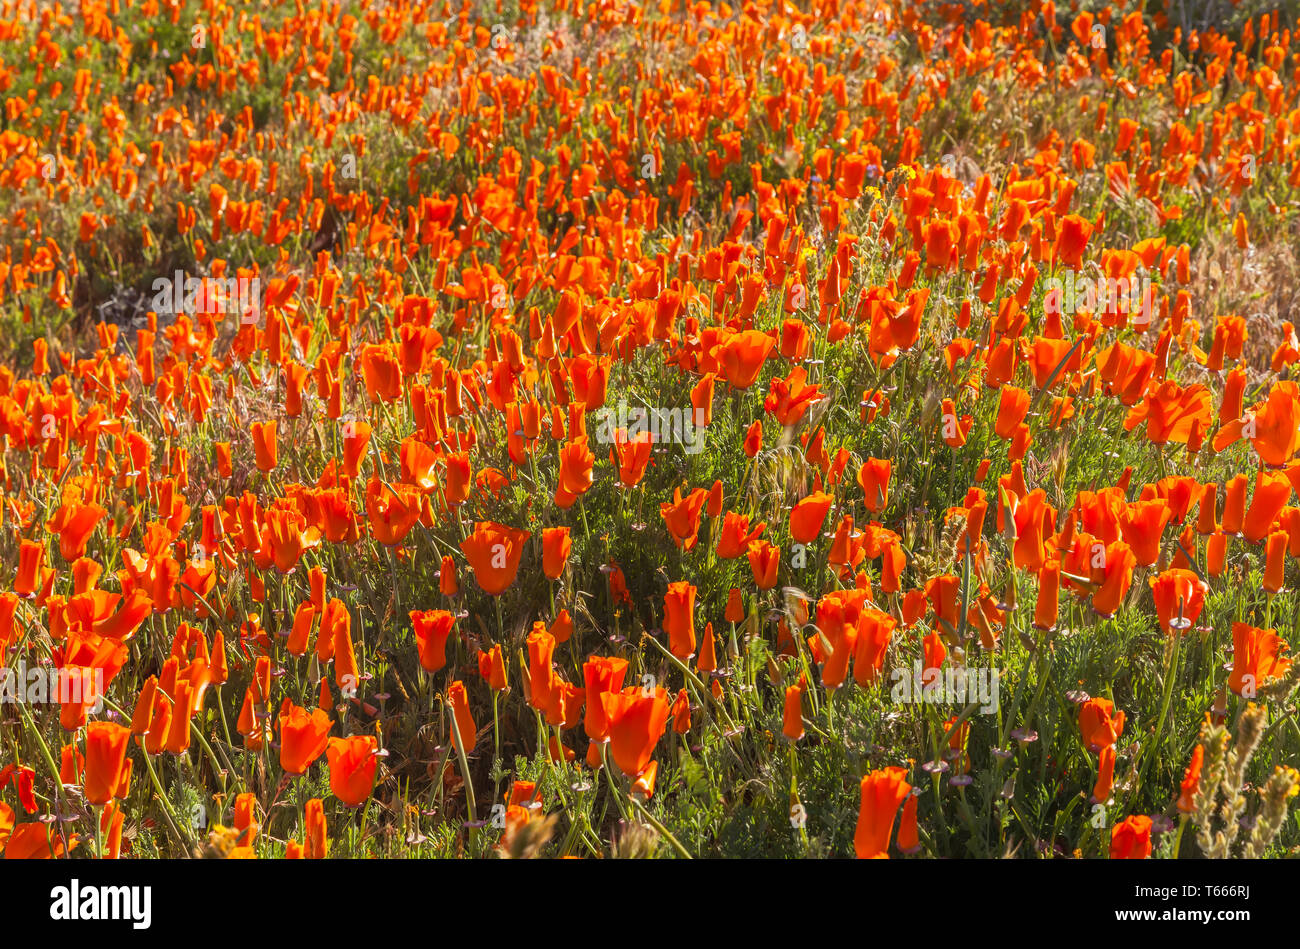 Field of blooming California poppies (Eschscholzia californica) at Antelope Valley California Poppy Reserve, USA, in spring. - Stock Image